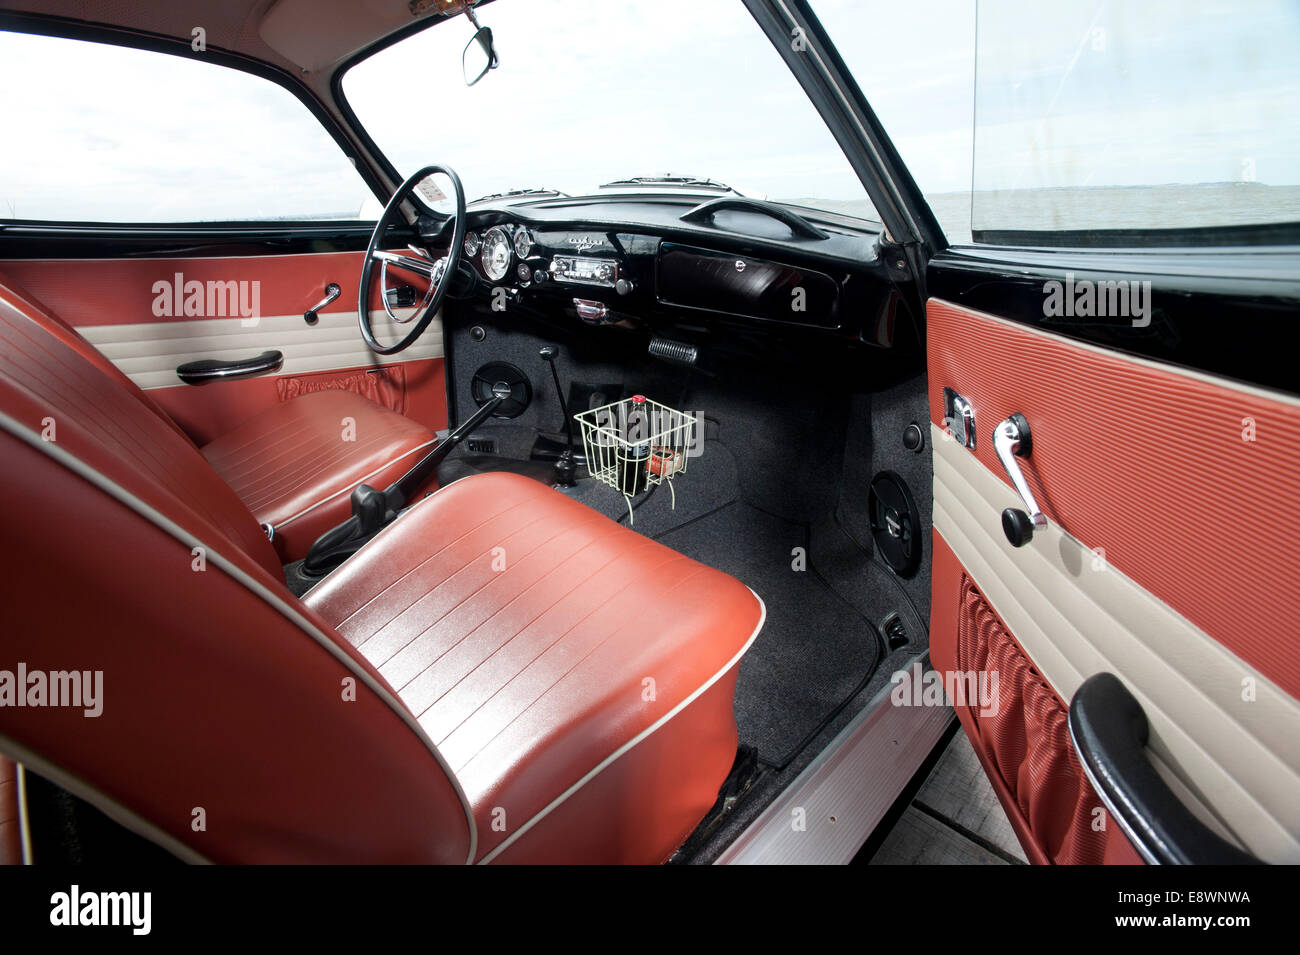 volkswagen karmann ghia type 14 coupe german classic car interior stock photo 74324694 alamy. Black Bedroom Furniture Sets. Home Design Ideas